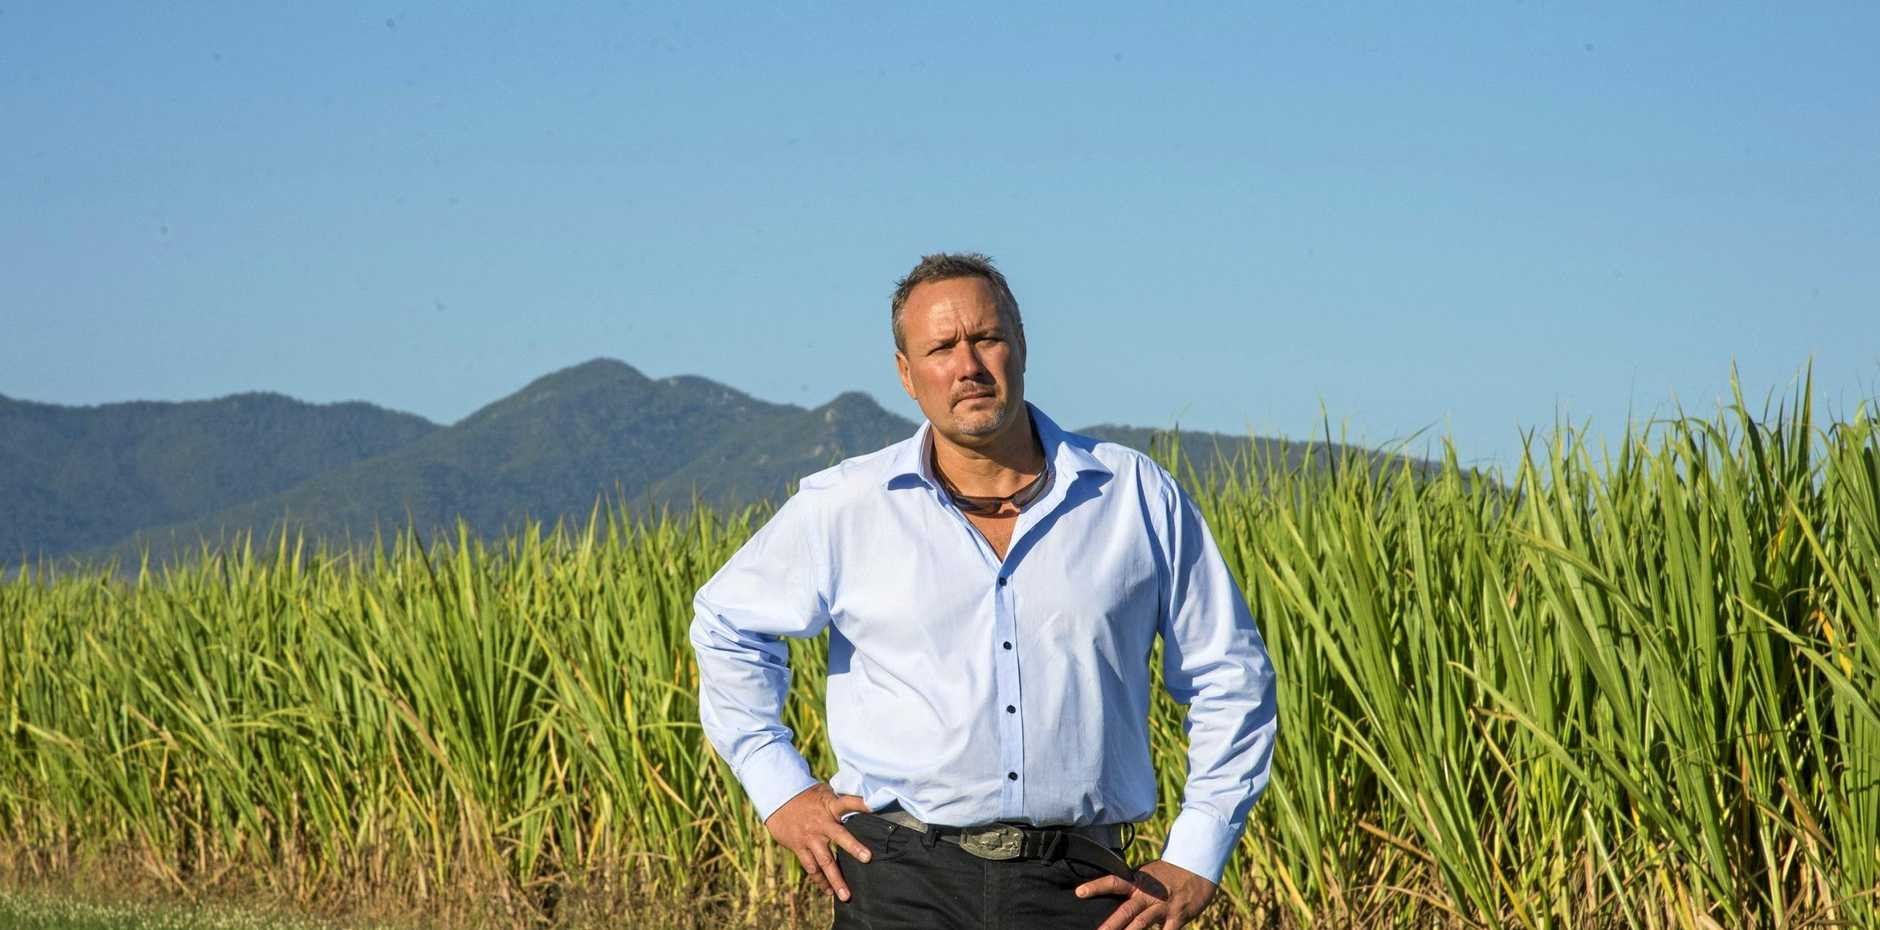 One Nation Mirani MP Stephen Andrew has accused the State Government of not supporting the agricultural sector by applying for money in the Northern Australia Infrastructure Facility in a timely manner.